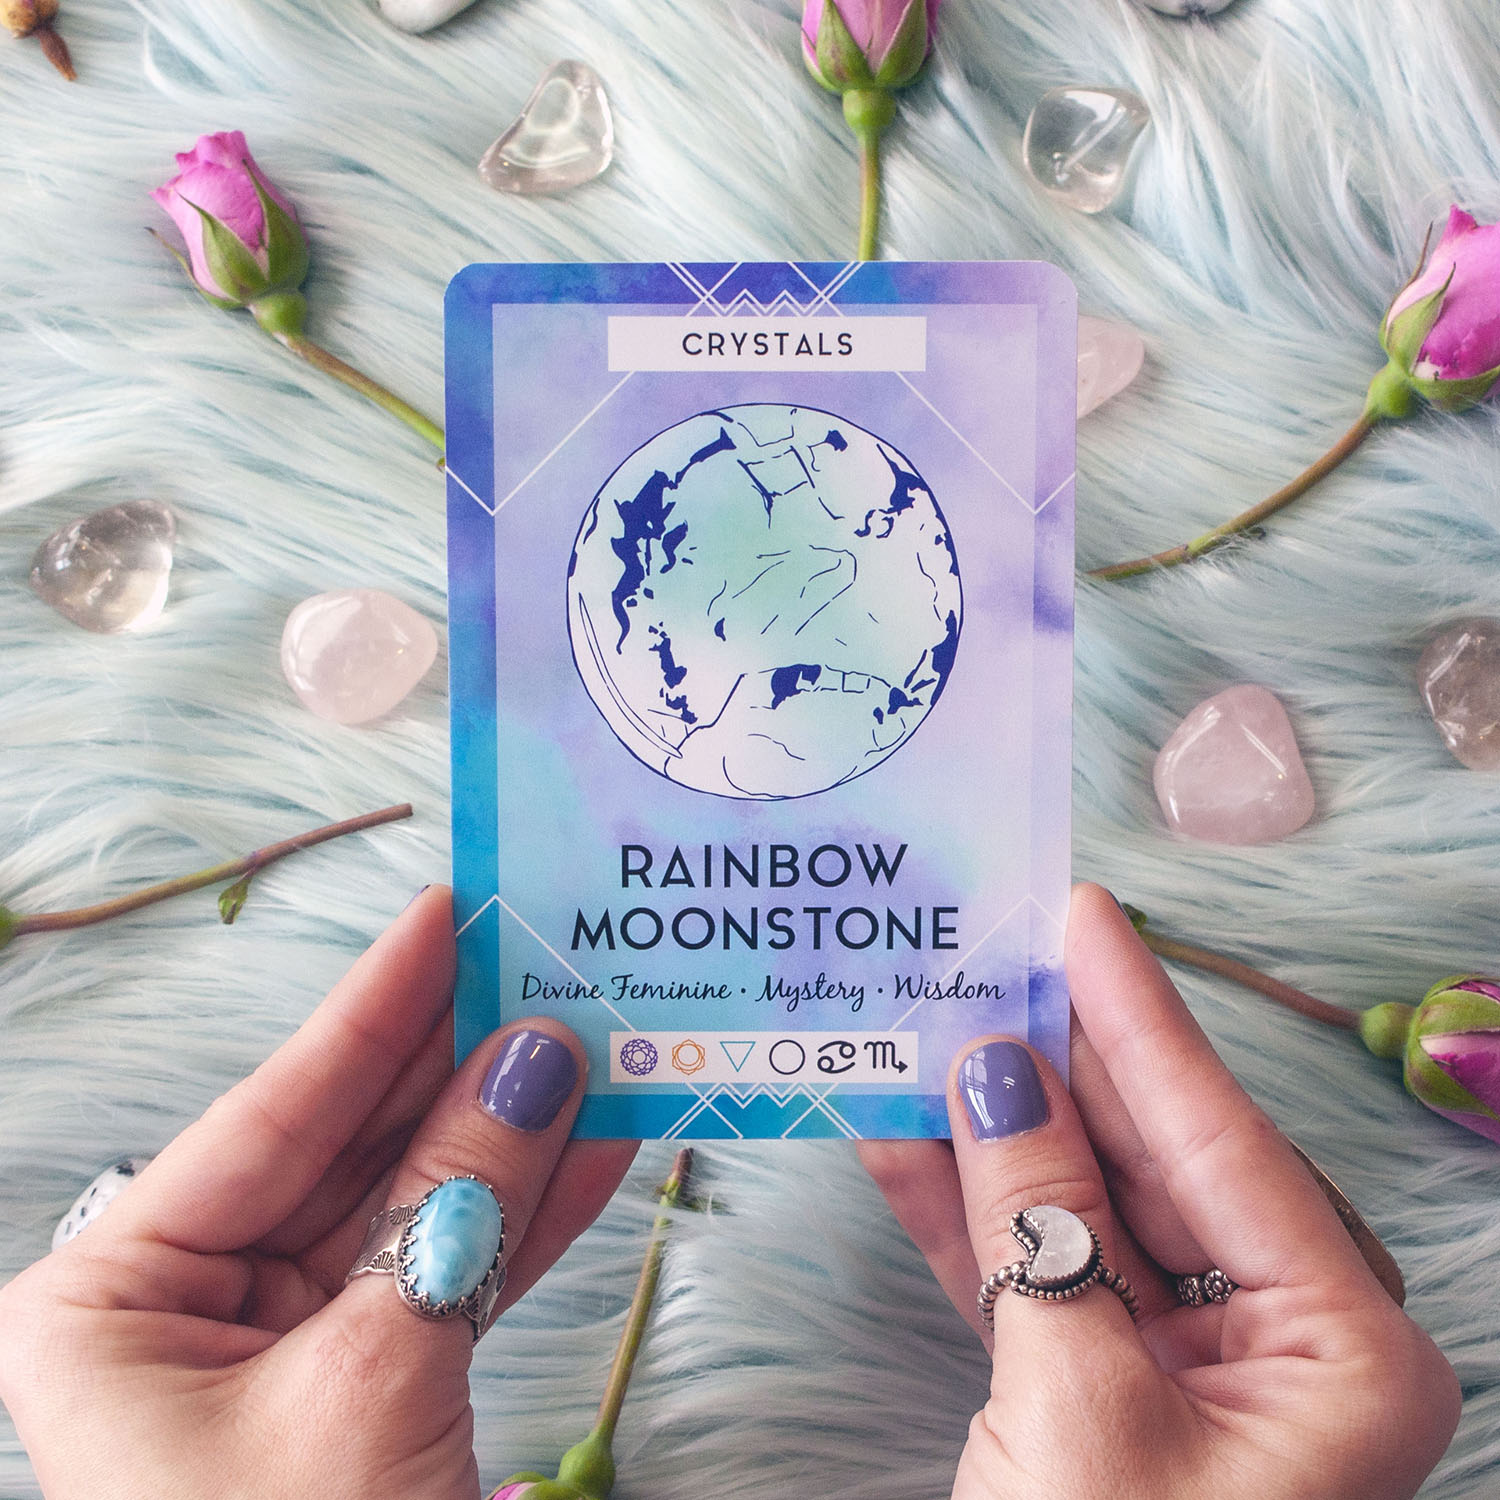 crystals-for-infertility-moonstone-for-infertility